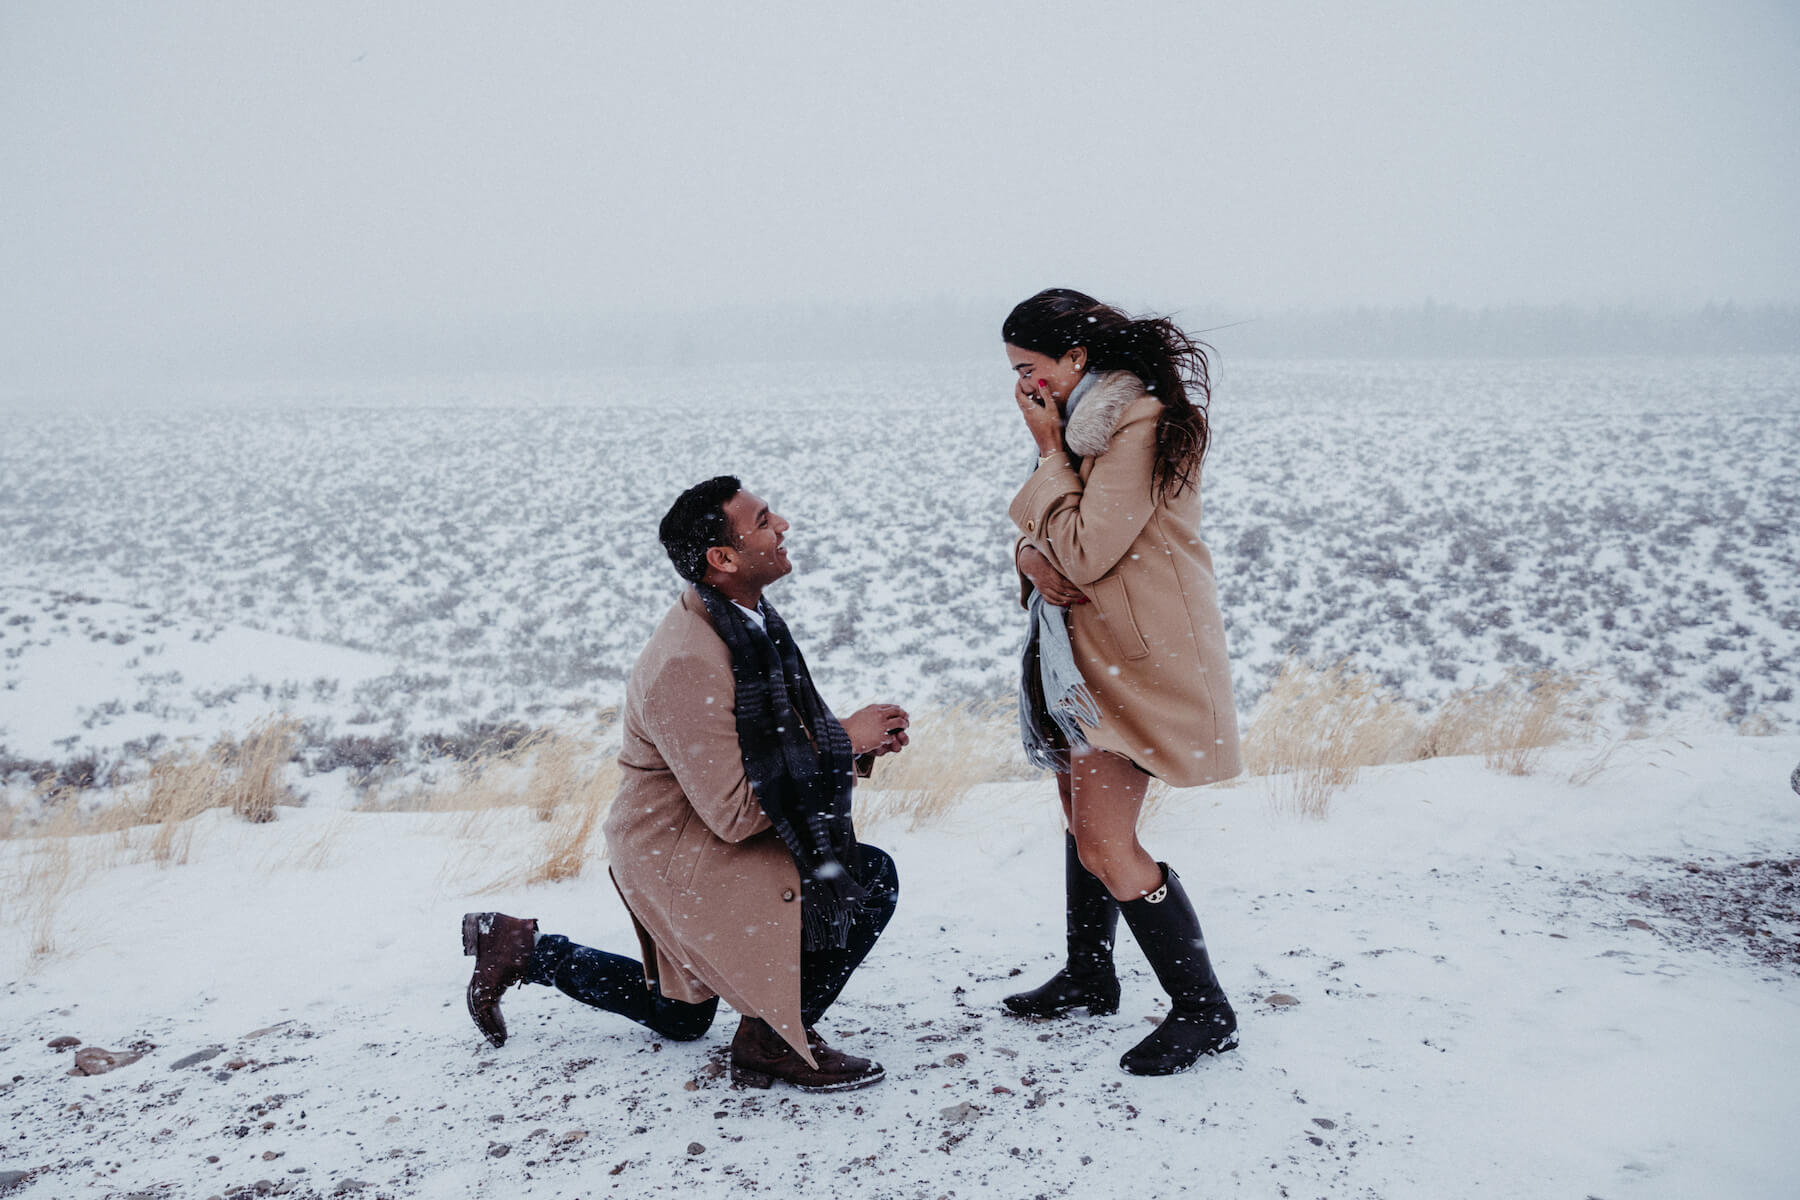 man is proposing to a woman and is on one knee in Chicago, USA